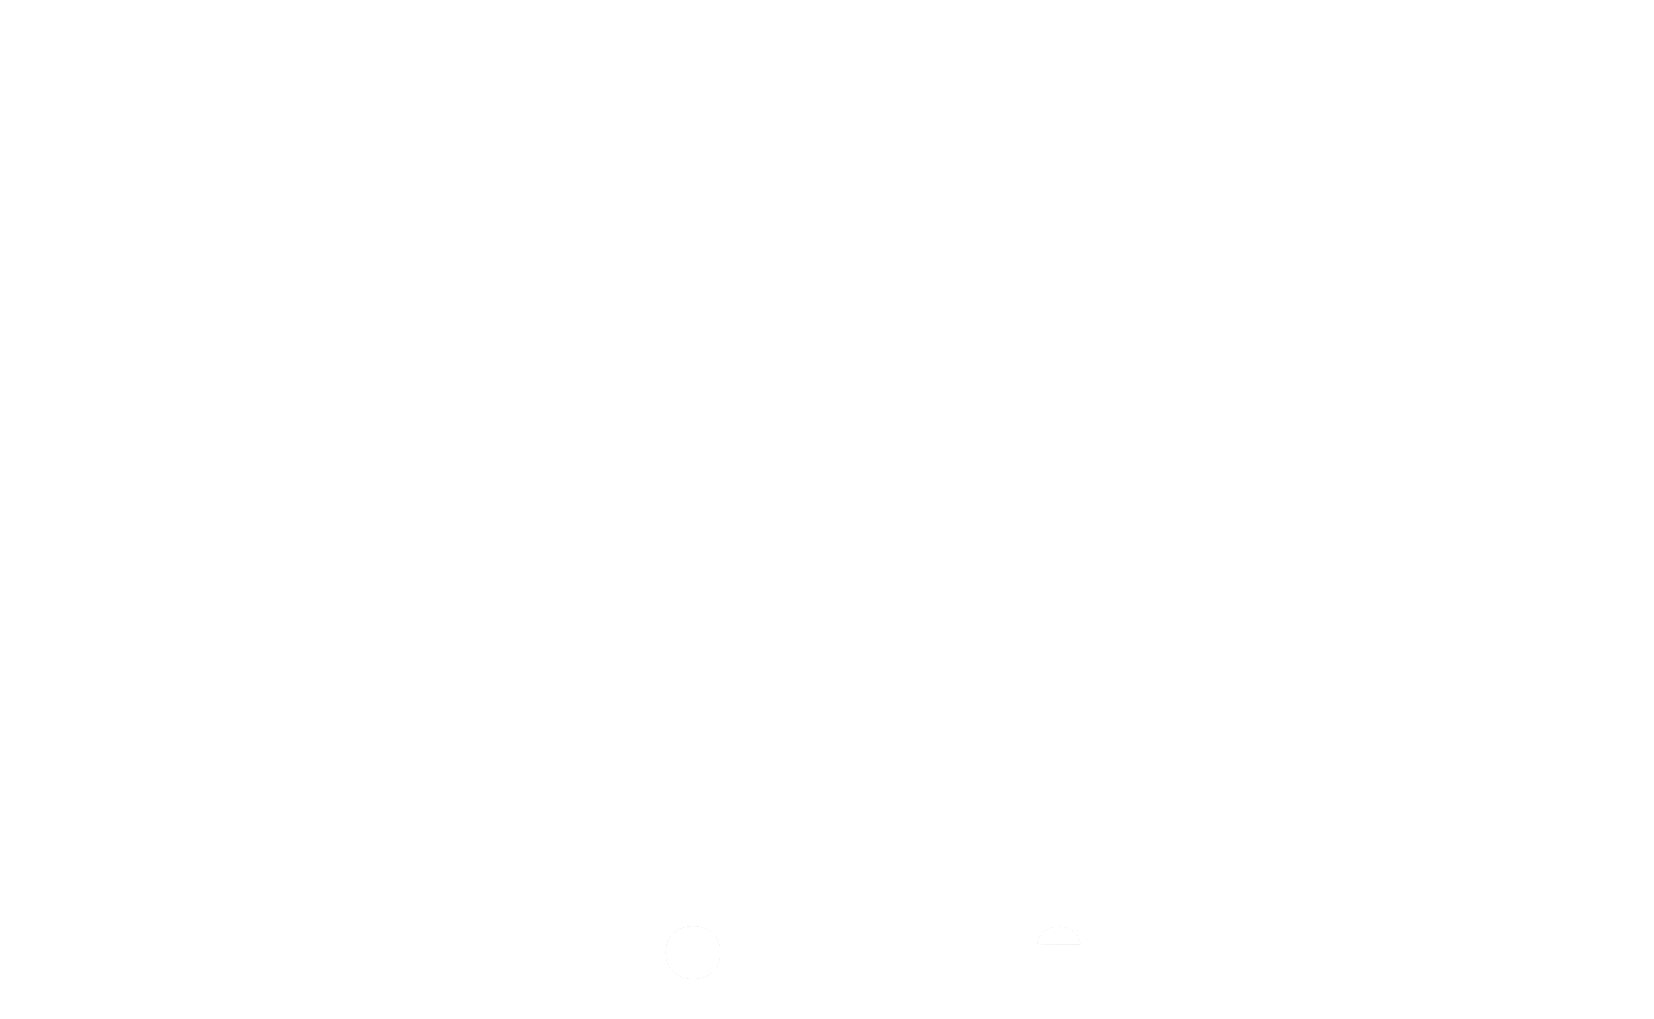 VC_Joure_logo_wit.png